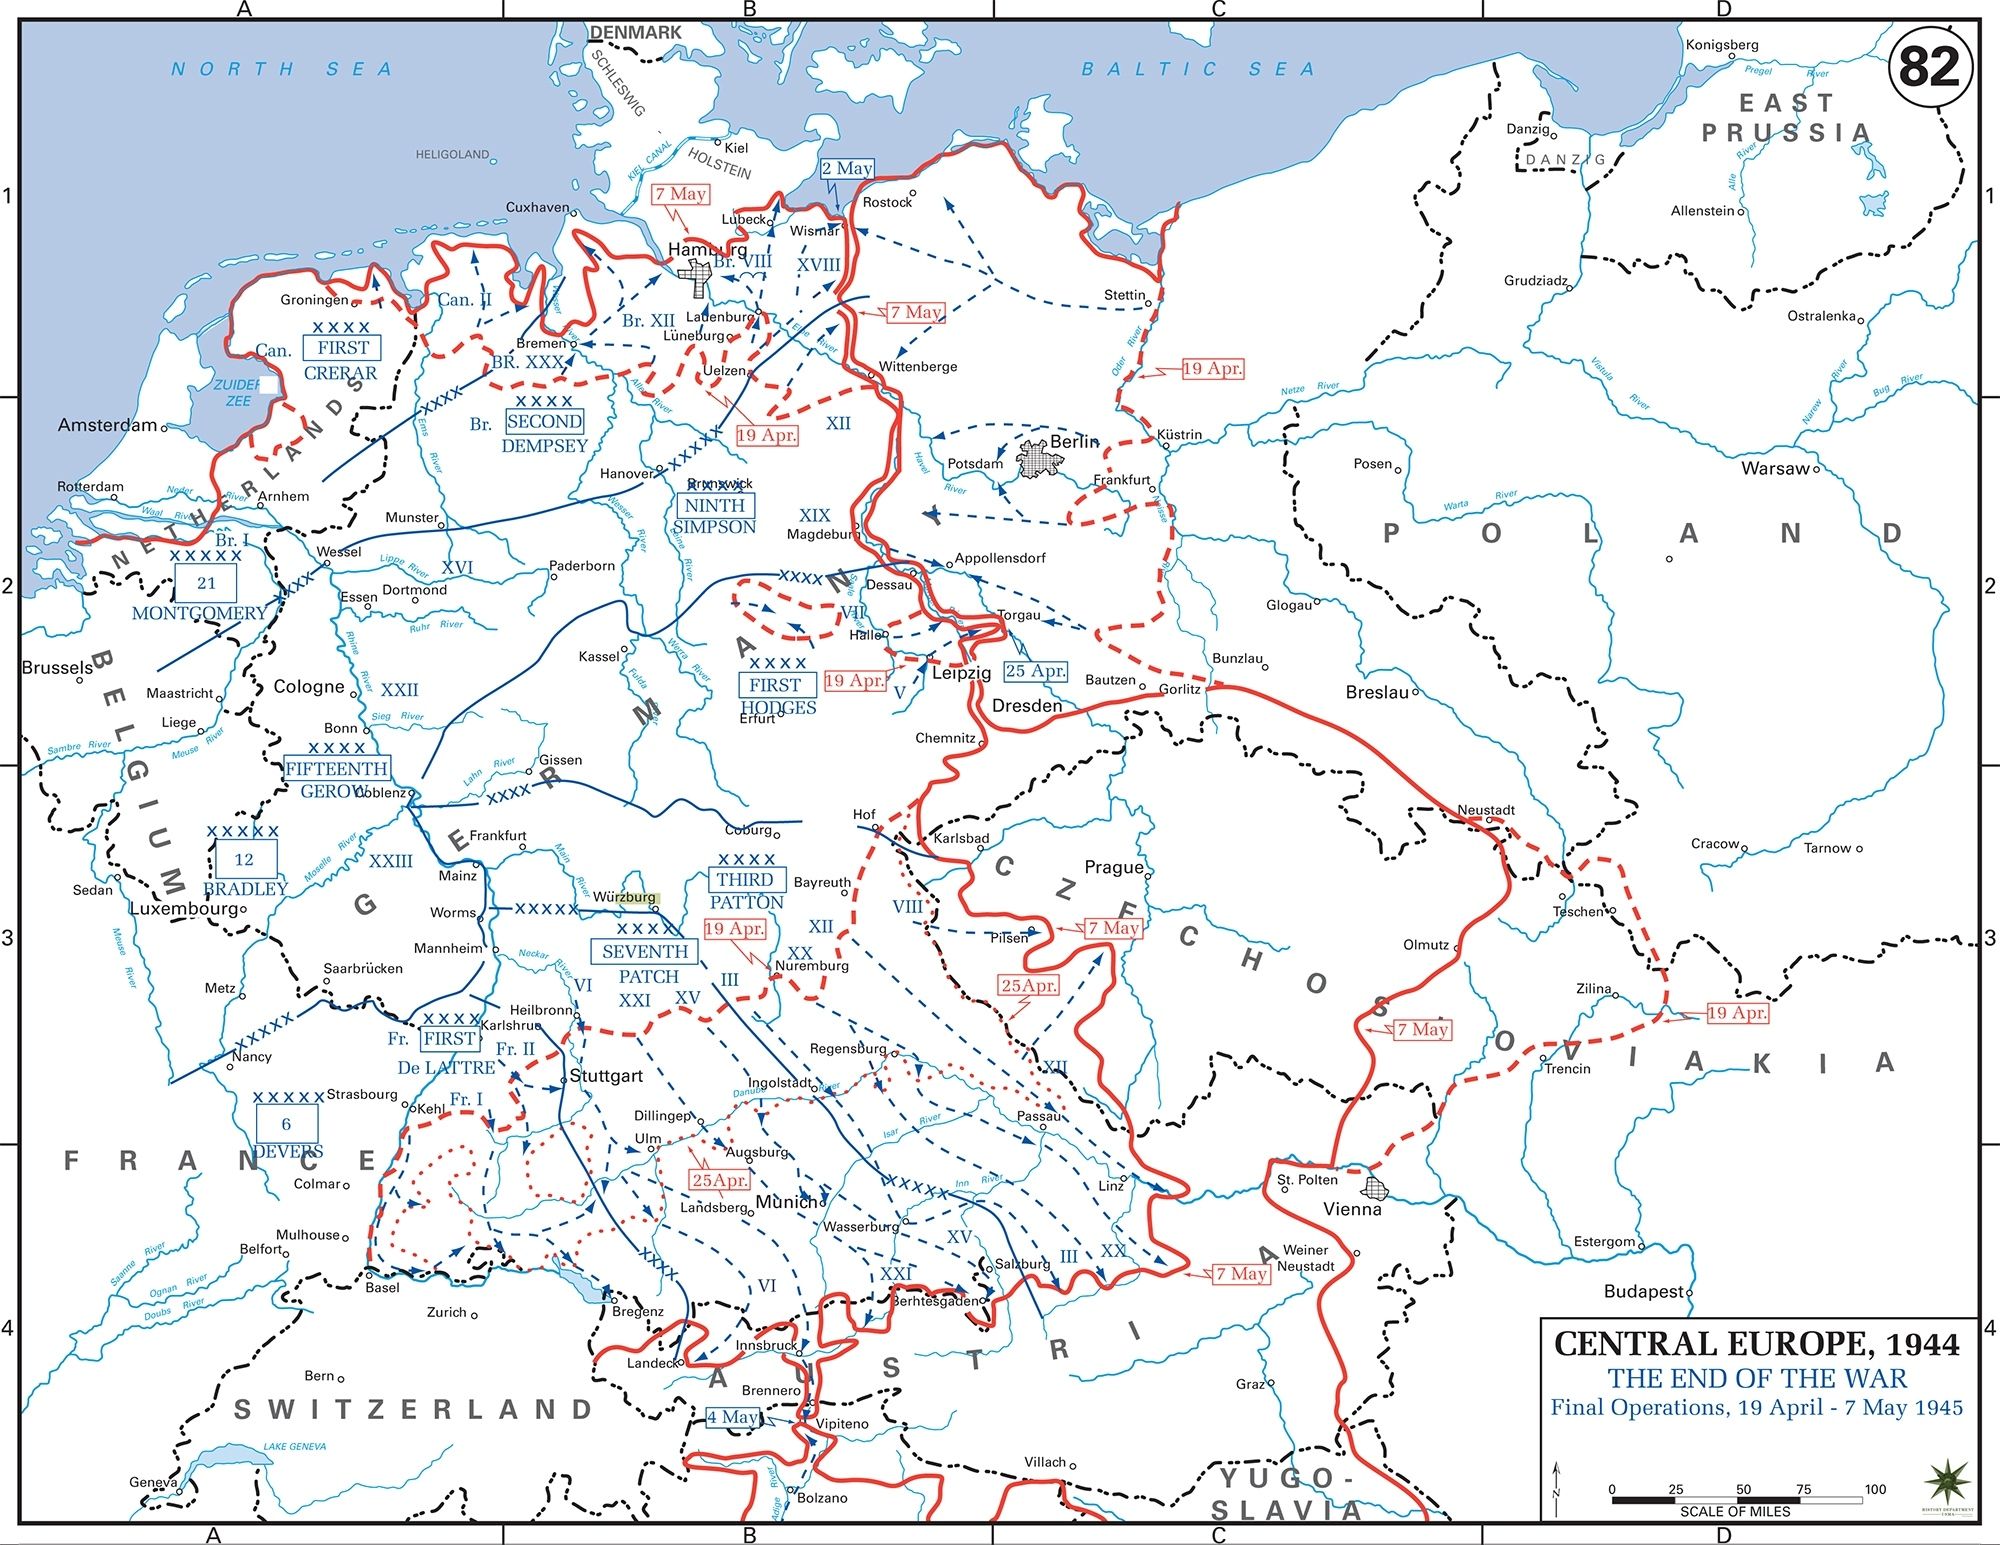 Map Of Wwii: Germany May 1945 inside Map Of Germany During World War Ii